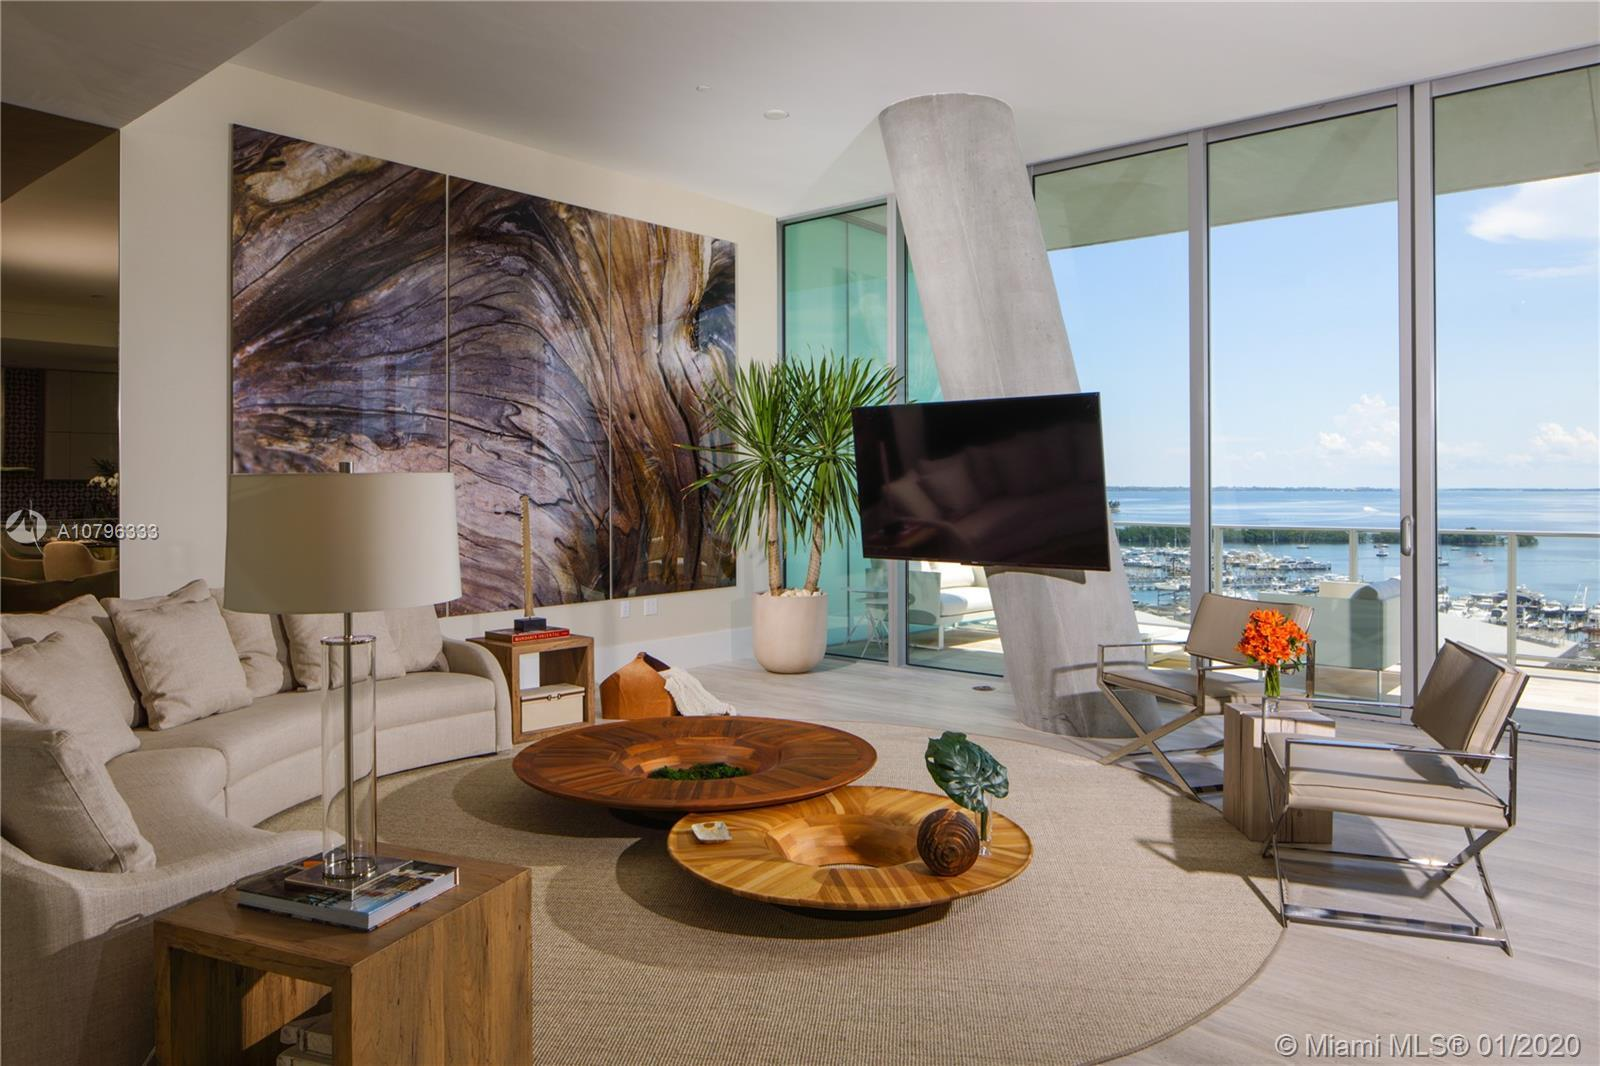 STUNNING MODEL UNIT! FURNISHED AND DECORATED WITH HIGH END ARTEFACTO PIECES. BREATHTAKING VIEWS FROM